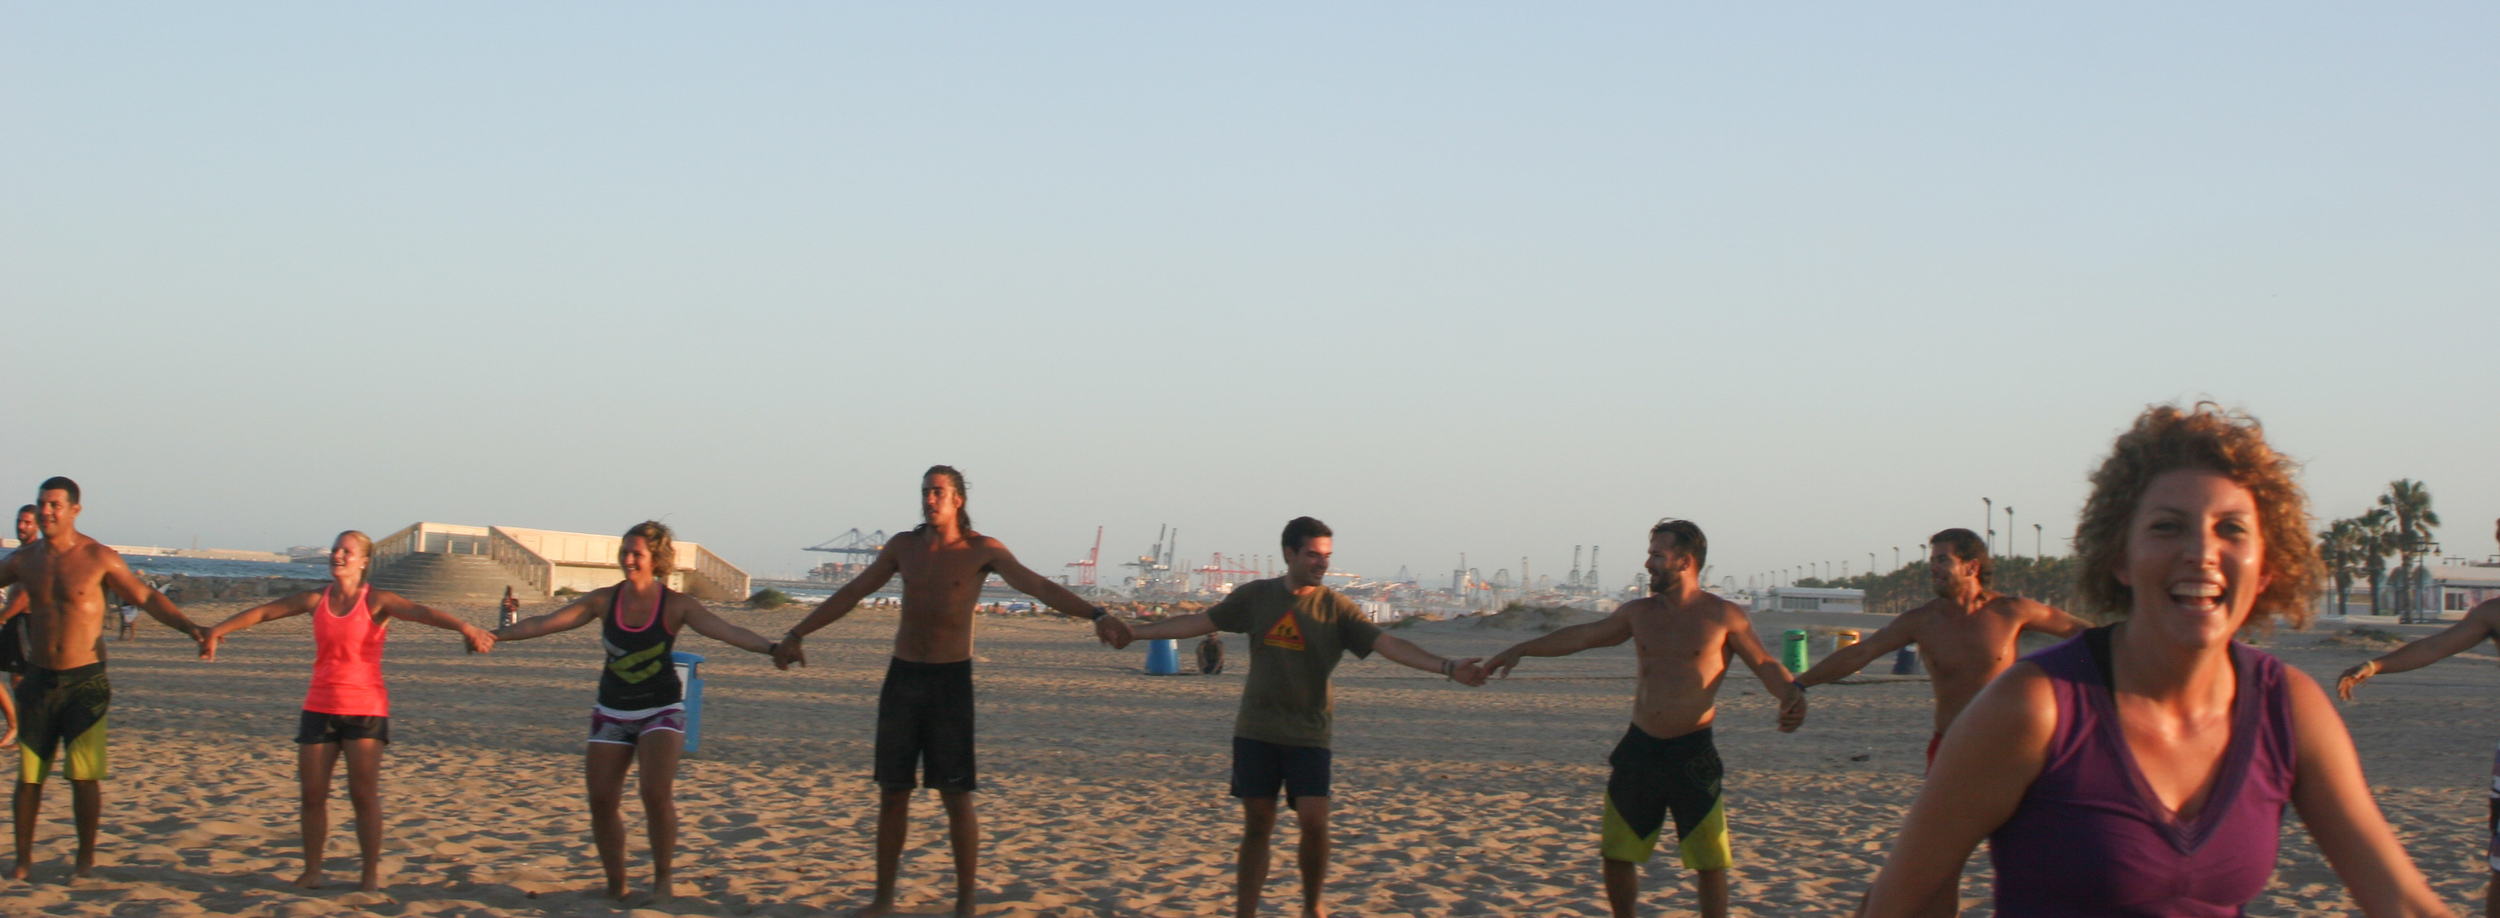 Full_CrossFit_Beach_Wod_V2_2015-28.jpg